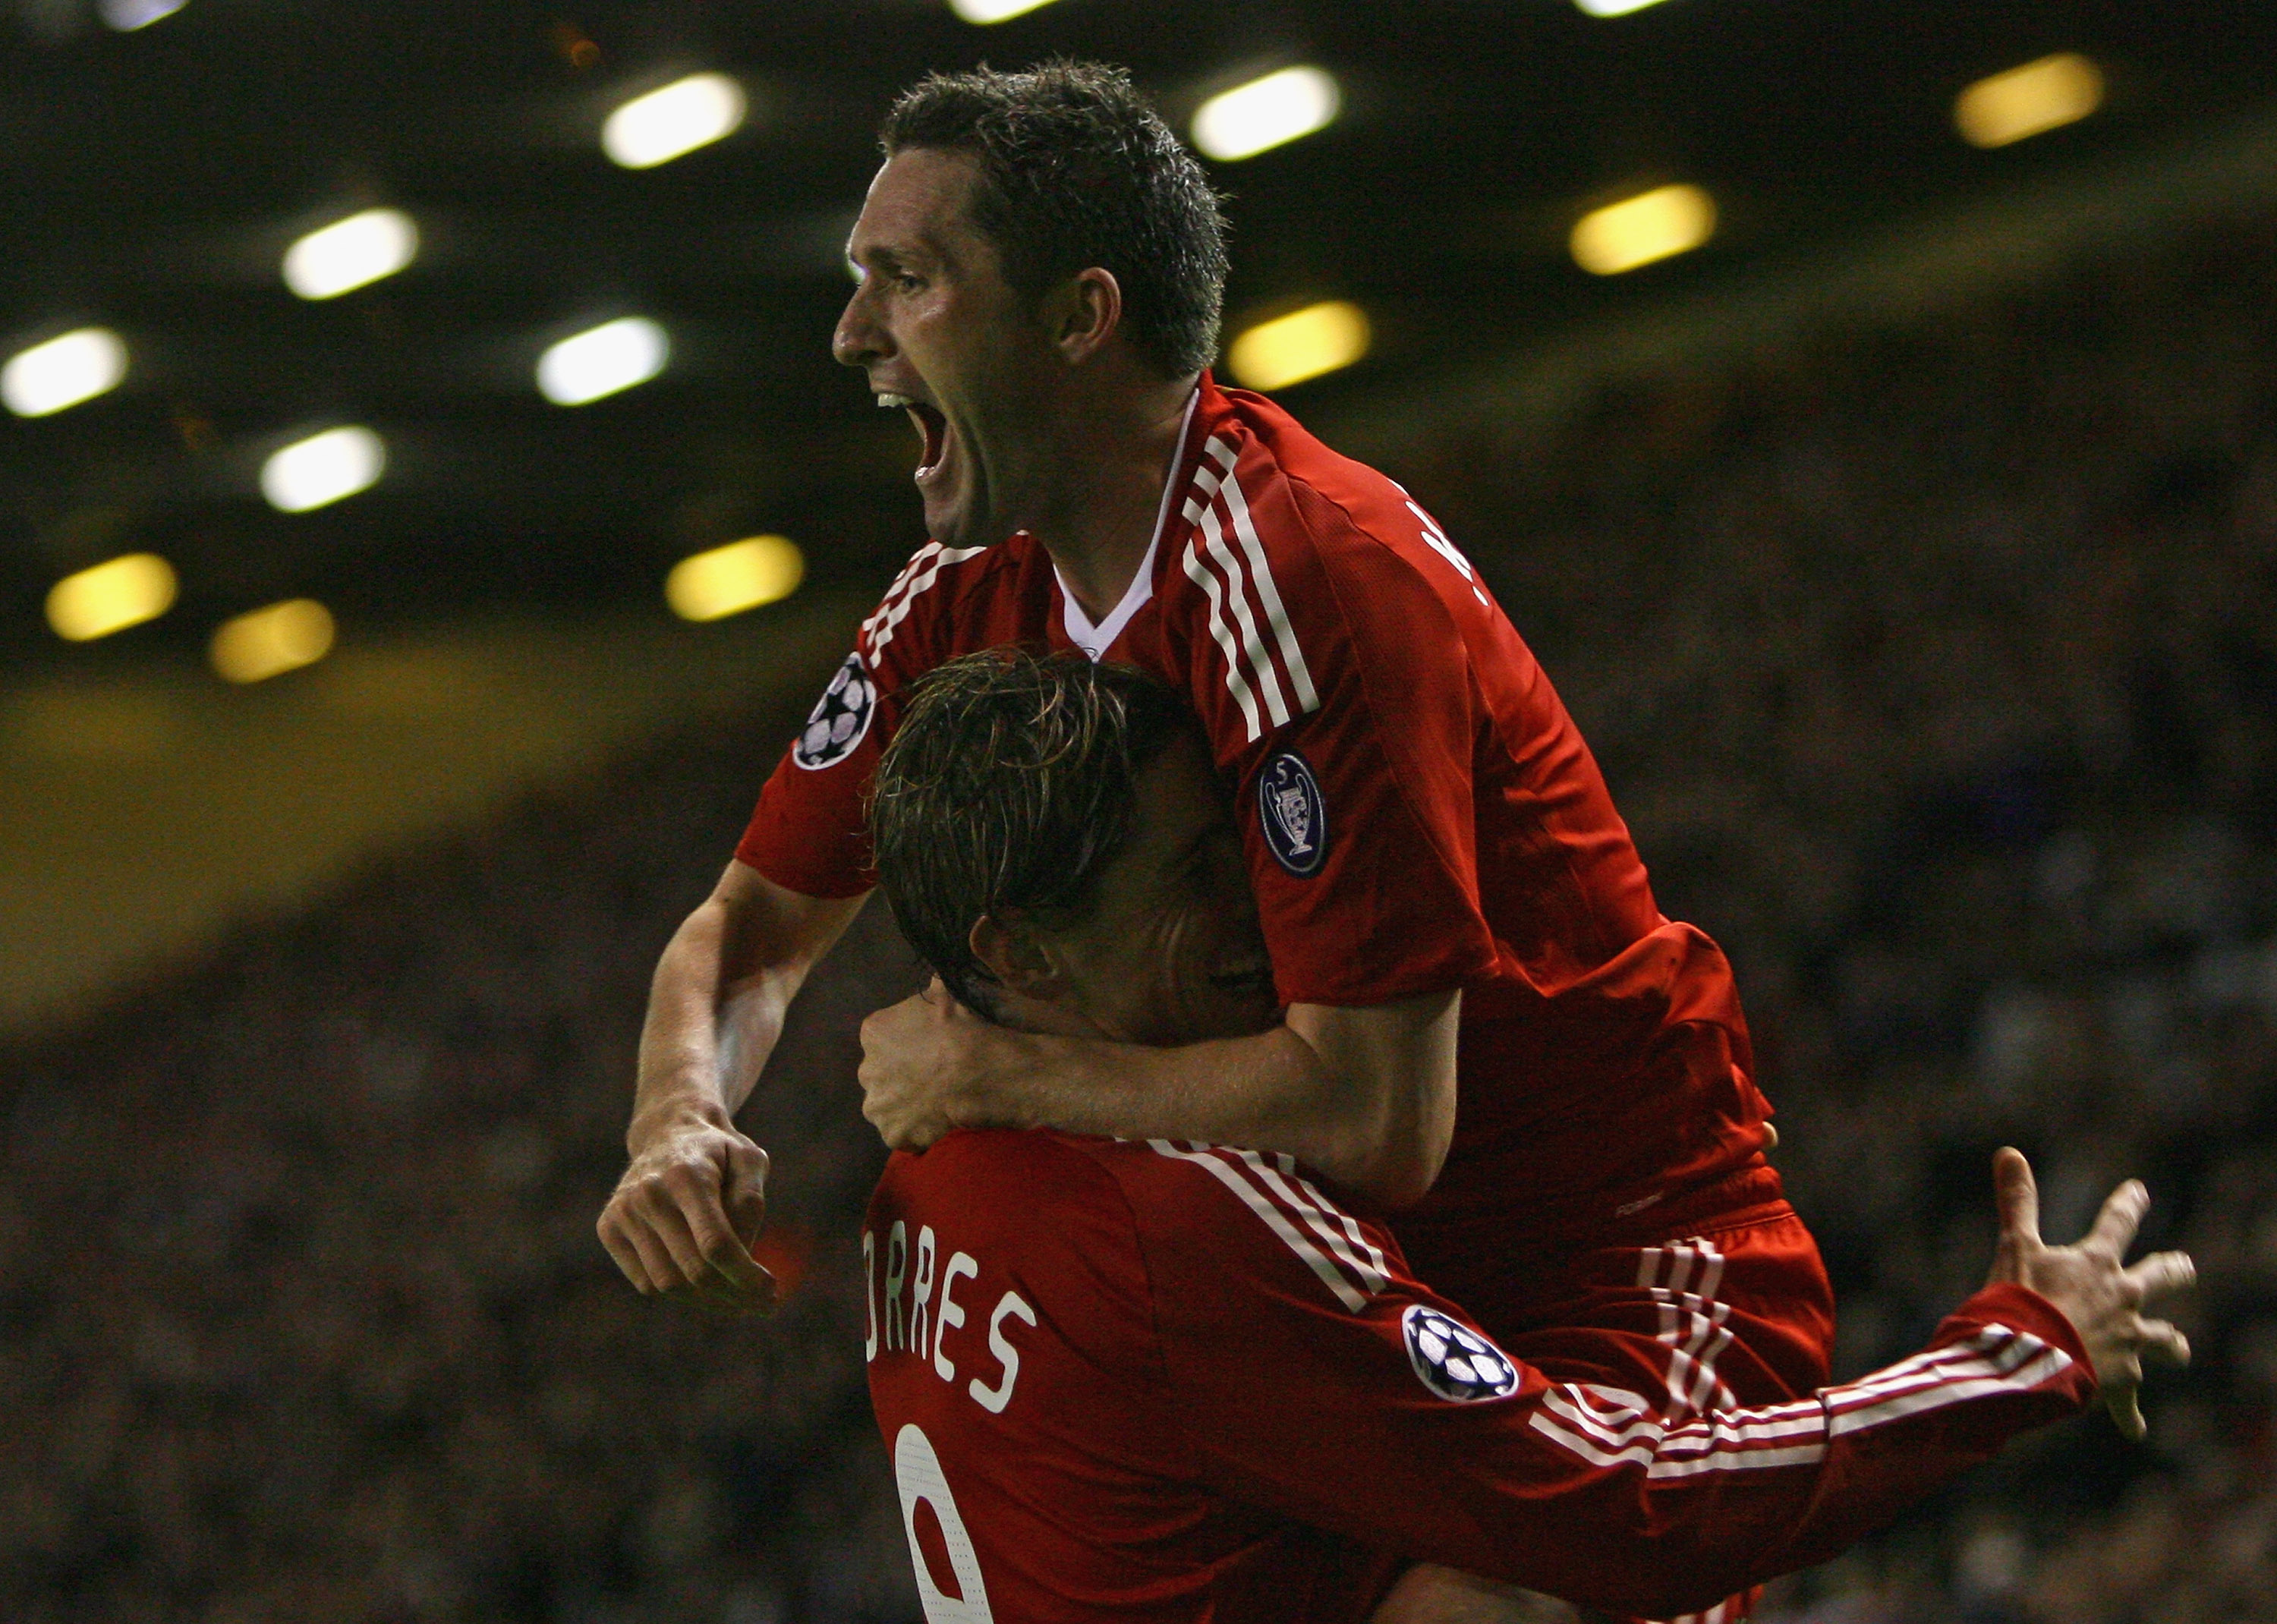 LIVERPOOL, UNITED KINGDOM - OCTOBER 01:  Robbie Keane of Liverpool celebrates scoring his team's second goal with team mate Fernando Torres during the UEFA Champions League Group D match between Liverpool and PSV Eindhoven at Anfield on October 1, 2008 in